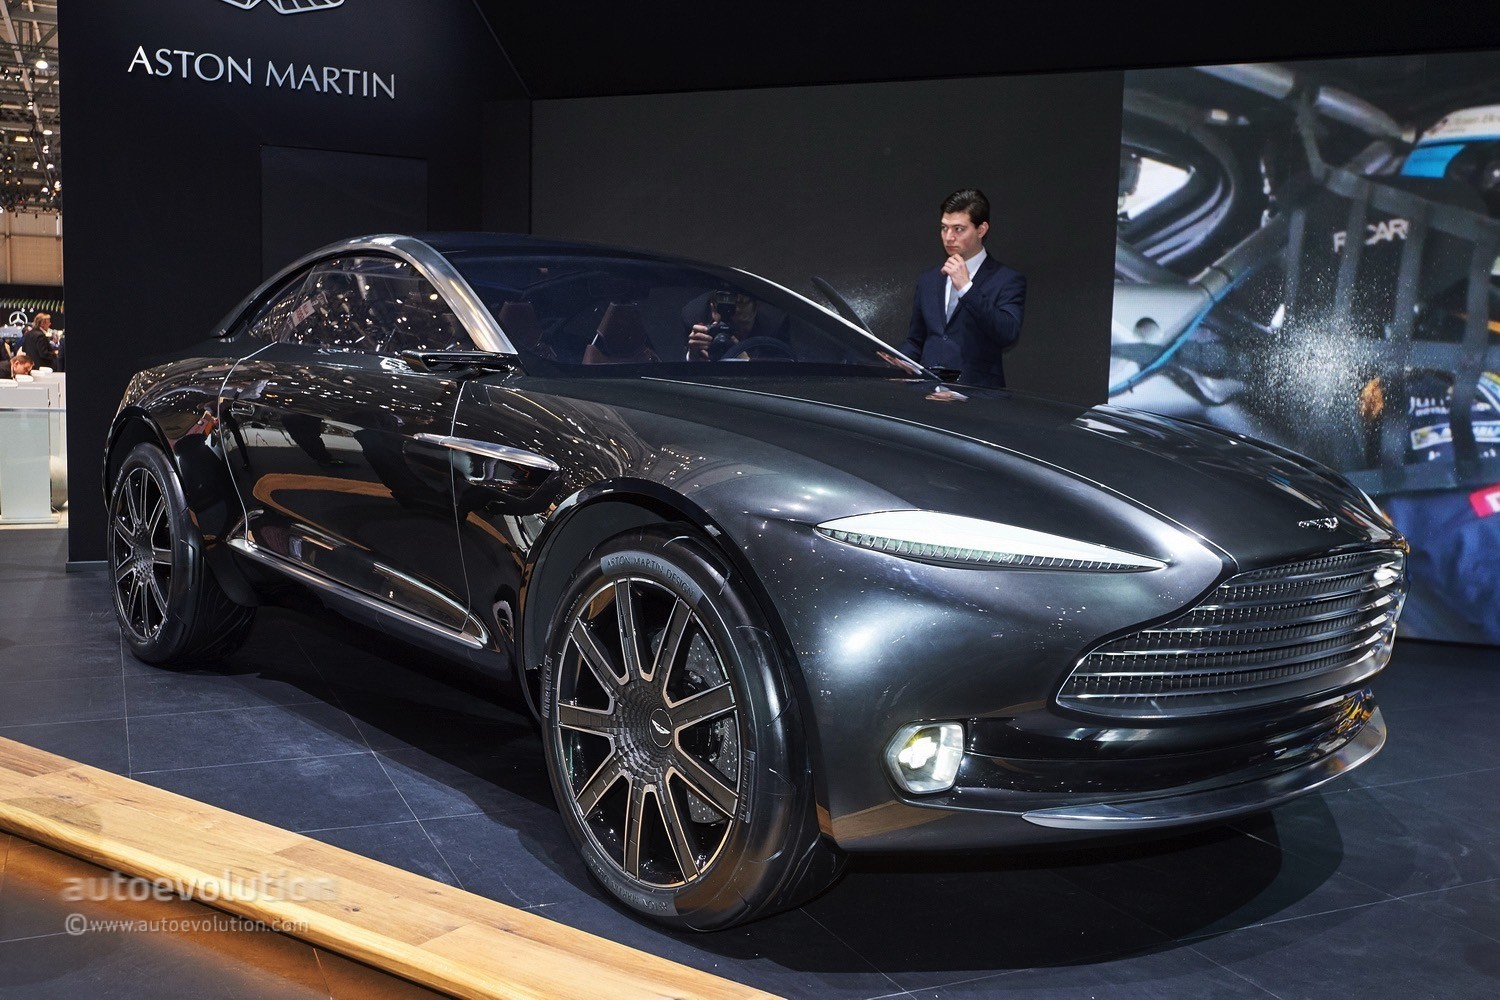 aston martin dbx goes official, £200 million funding approved